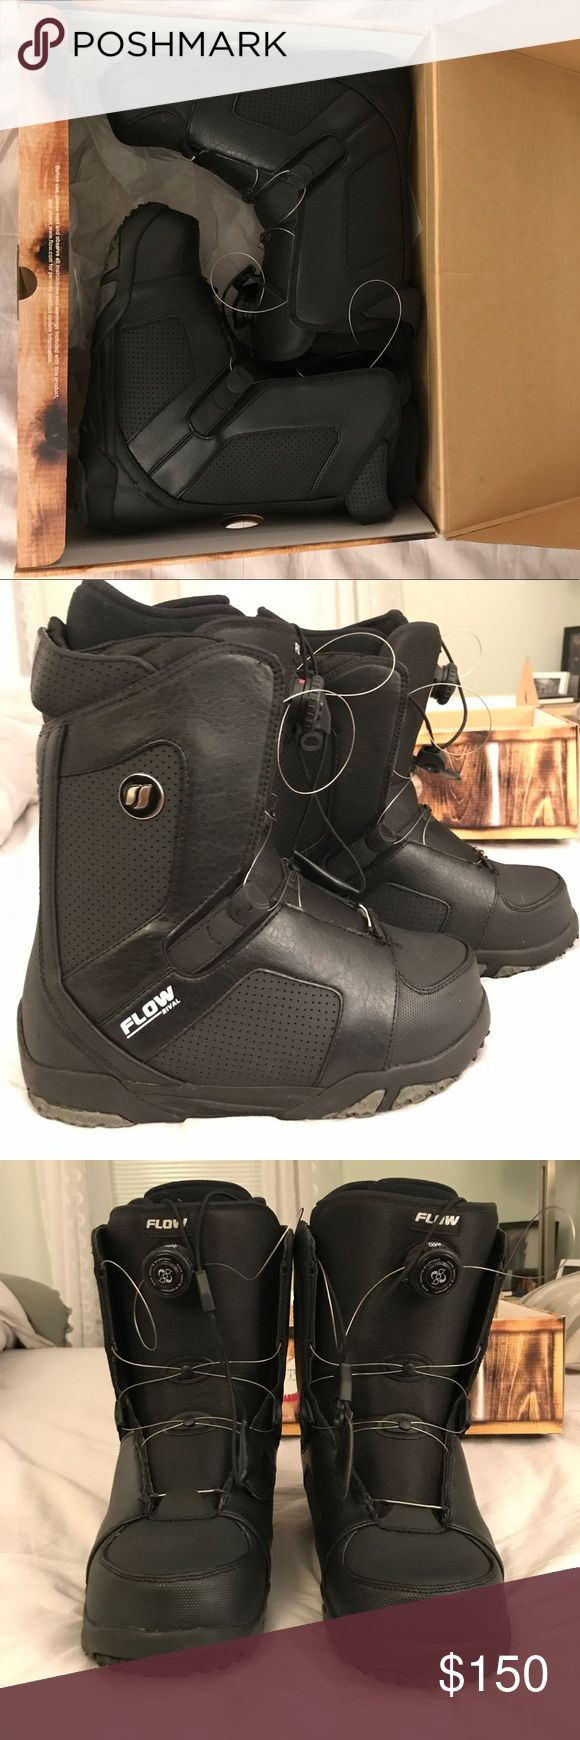 Brand New 'Flow Rival' Snowboard Boots Brand New in Box Snowboarding Boots. Size 8.5 men's. Purchased for $160, simply do not fit! Offers welcome but because they are brand new I am looking for reasonable offers! Get a great deal as summer ends! flow rival Shoes Athletic Shoes